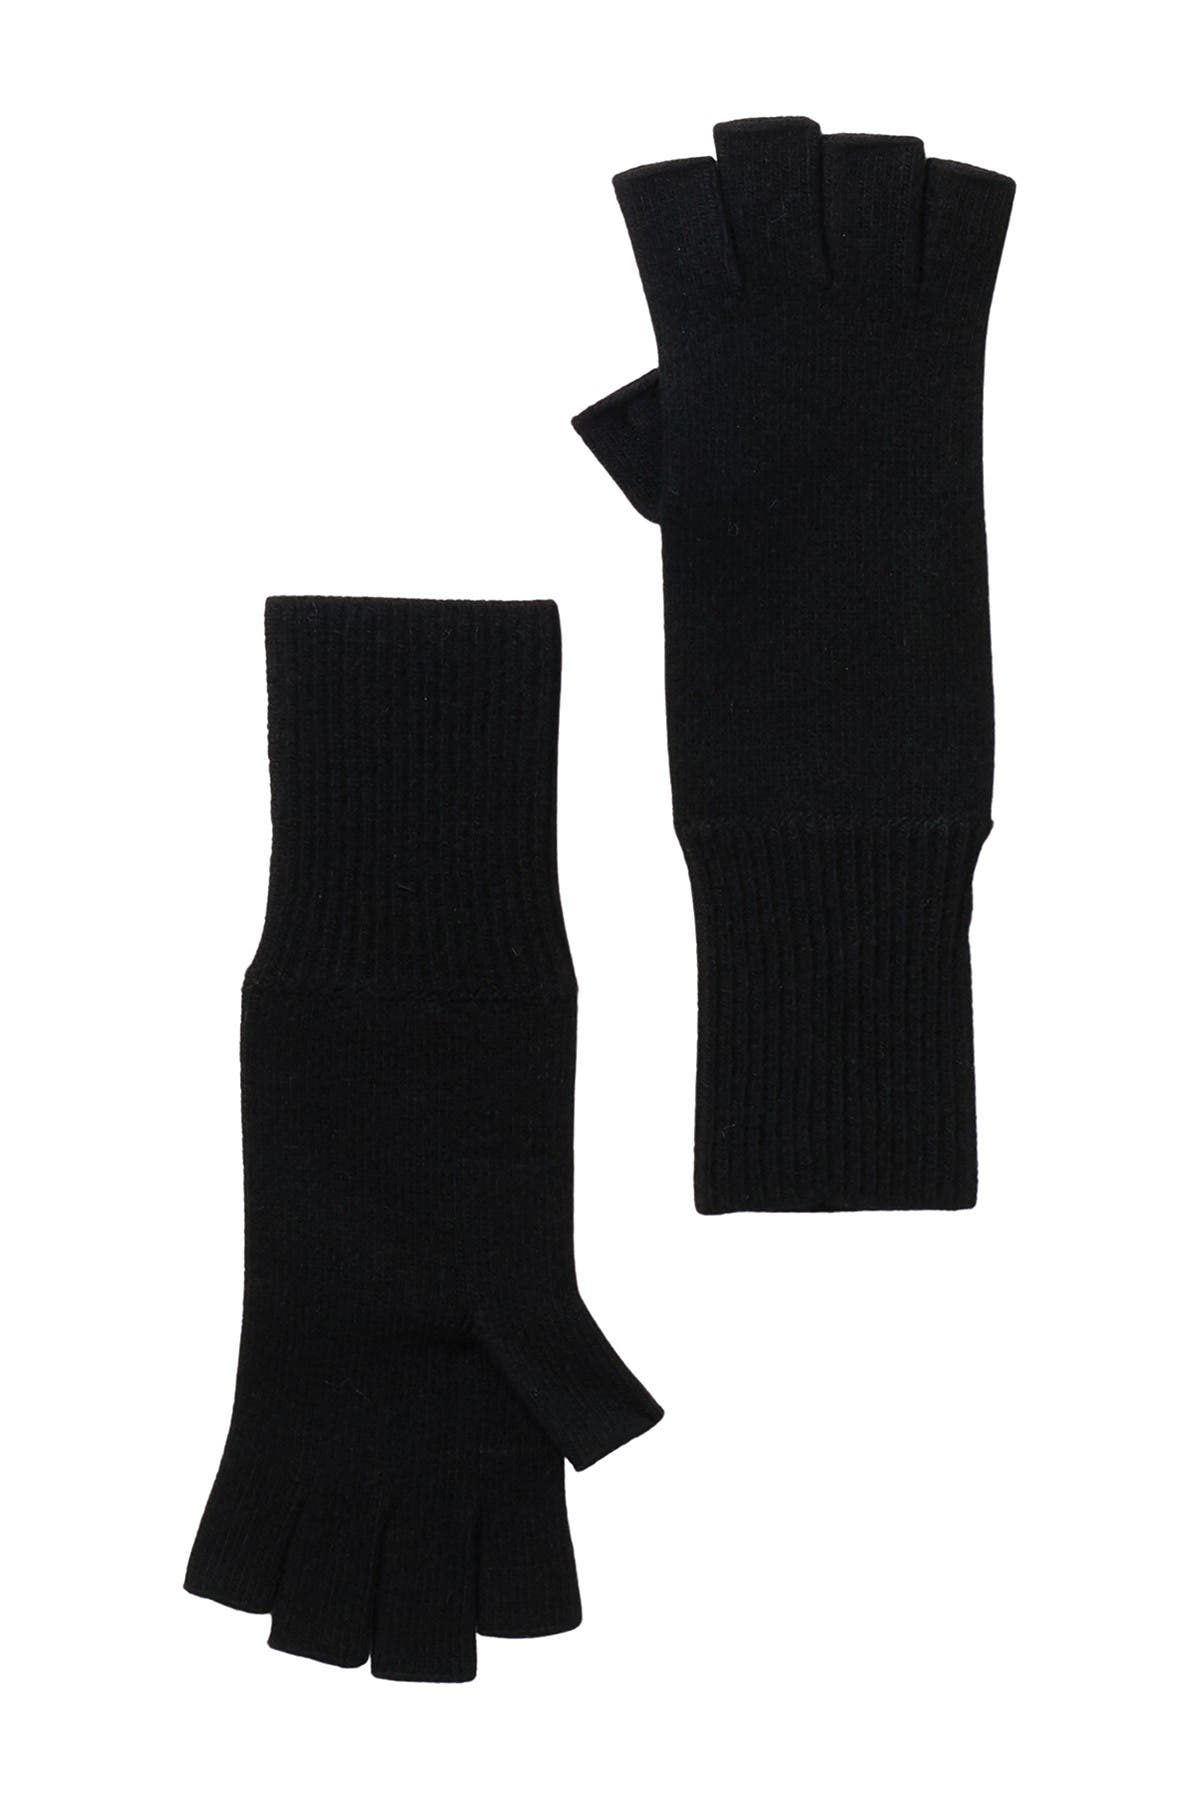 "Image of Portolano 12"" Cashmere Fingerless Gloves"